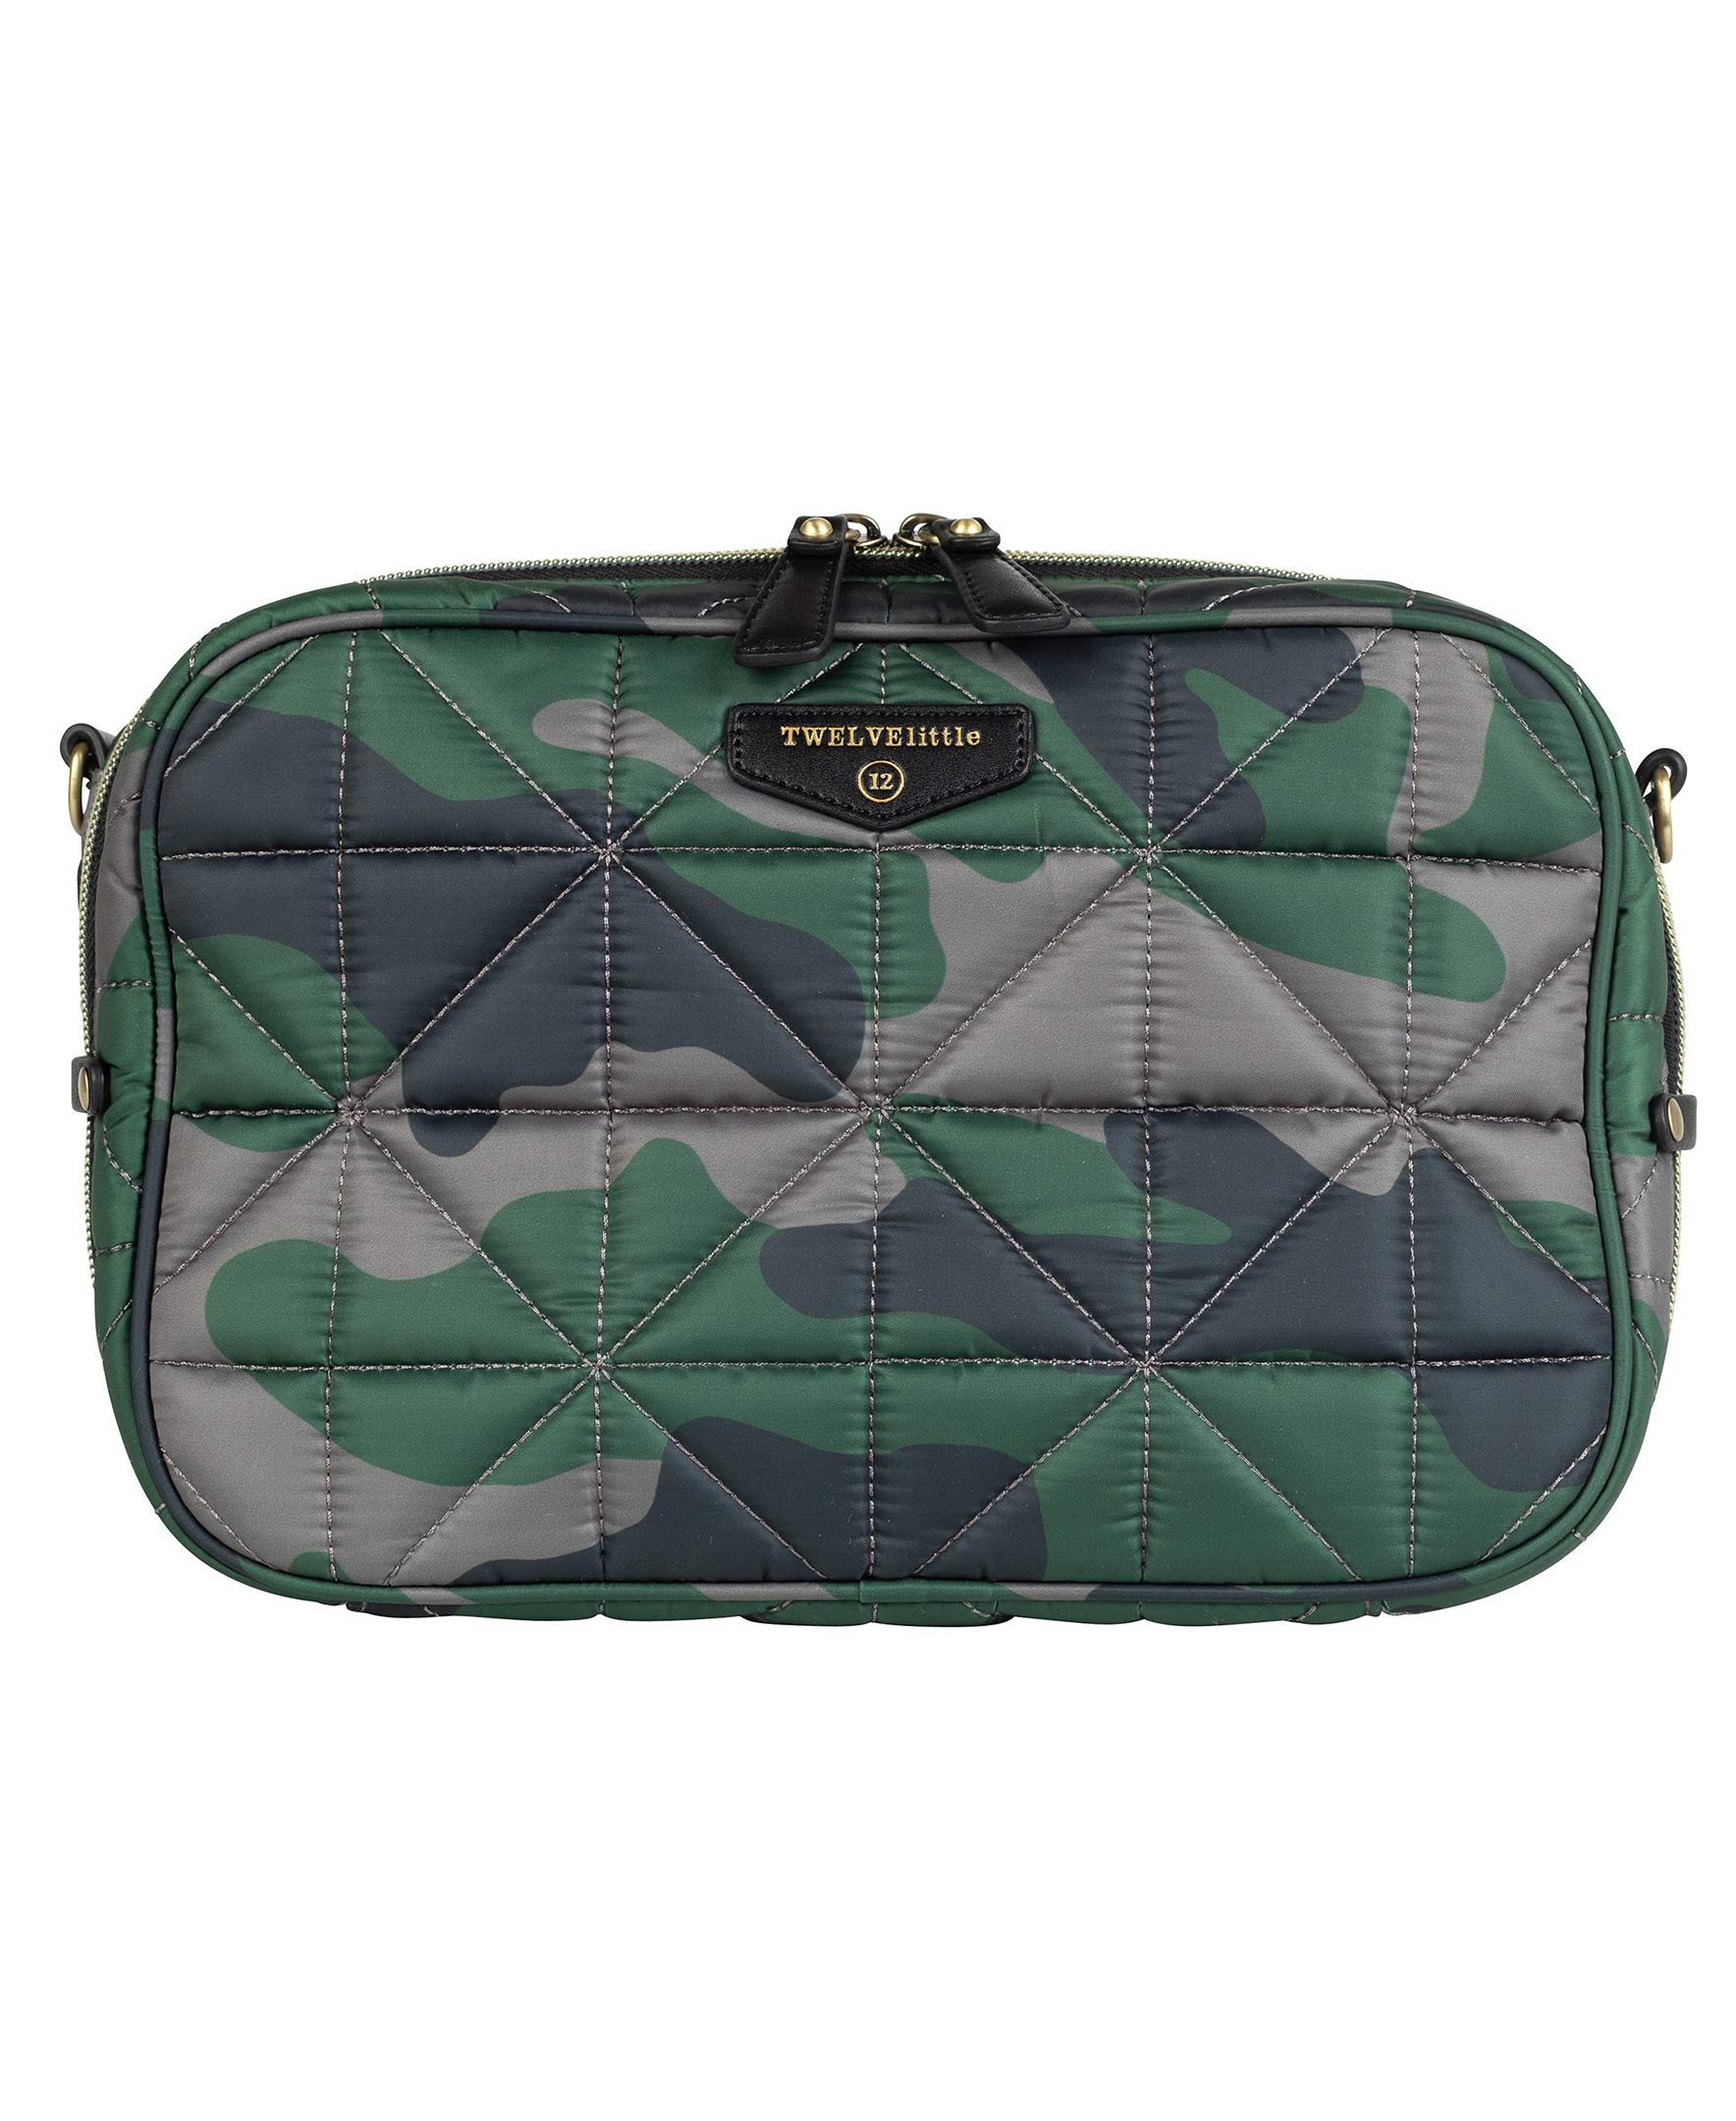 TWELVElittle Diaper Clutch 2.0 (Camo - New) - Fashion Diaper Bag for Moms and Dads, Worn As Clutch or Crossover Bag with Compartments for Diapers, Wipes and Changing Pad